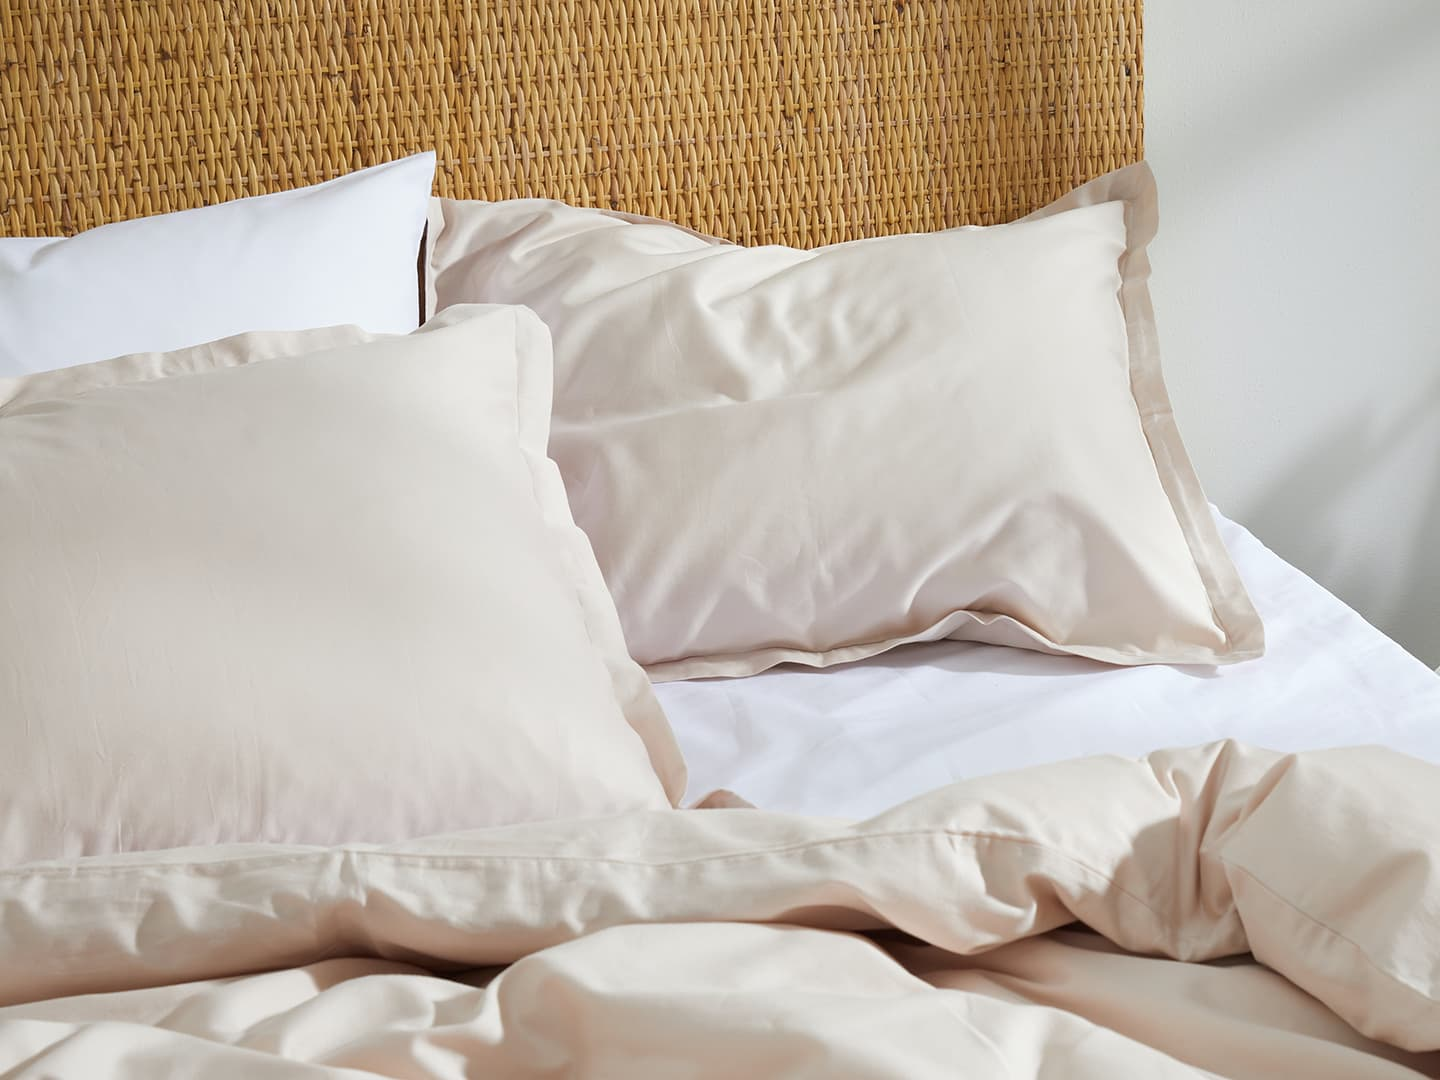 Pillowcase Vidd - Seashell Beige in the group Bedding / Pillowcases at A L V A (1104)